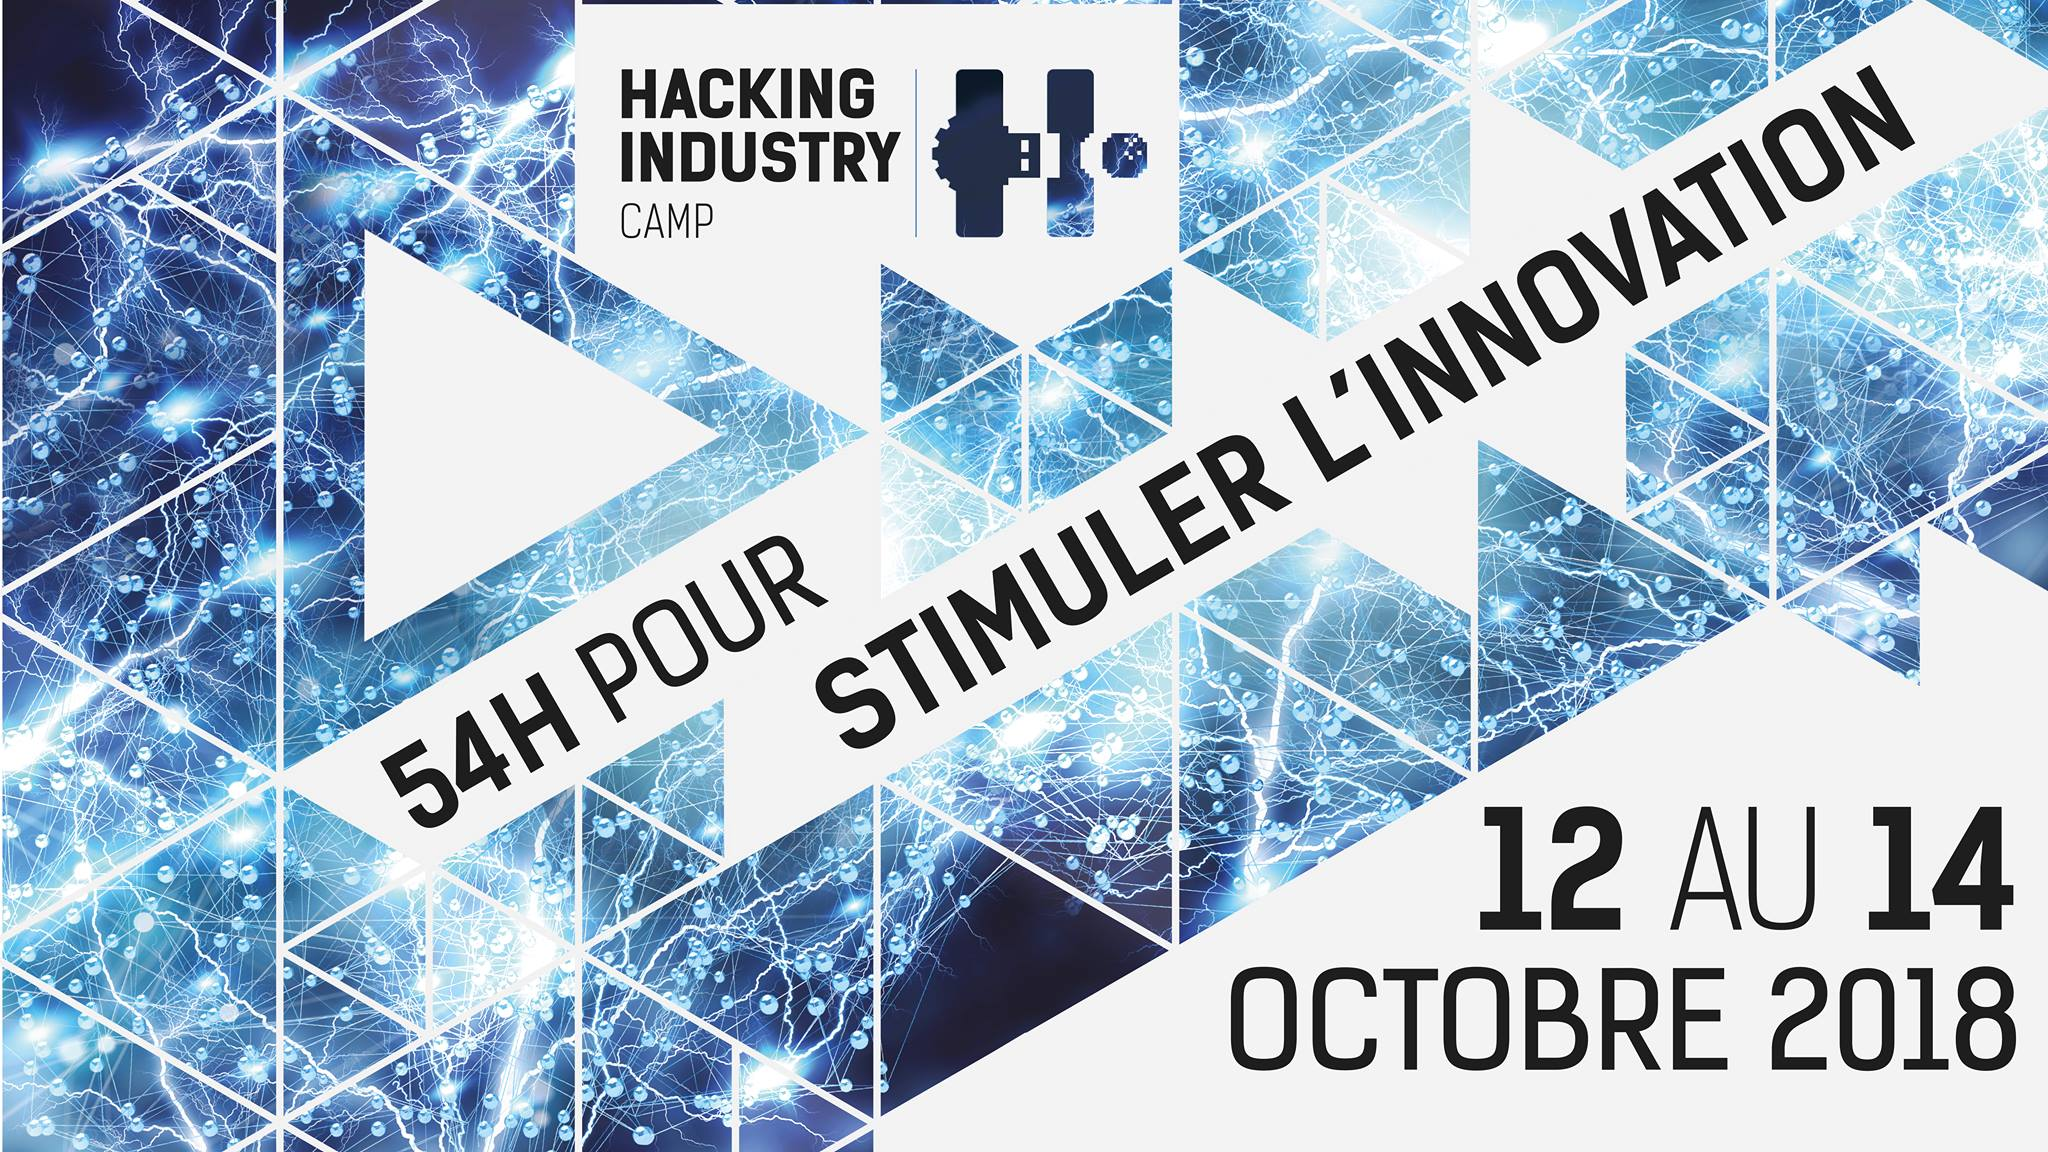 Hacking Industry Camp 2018